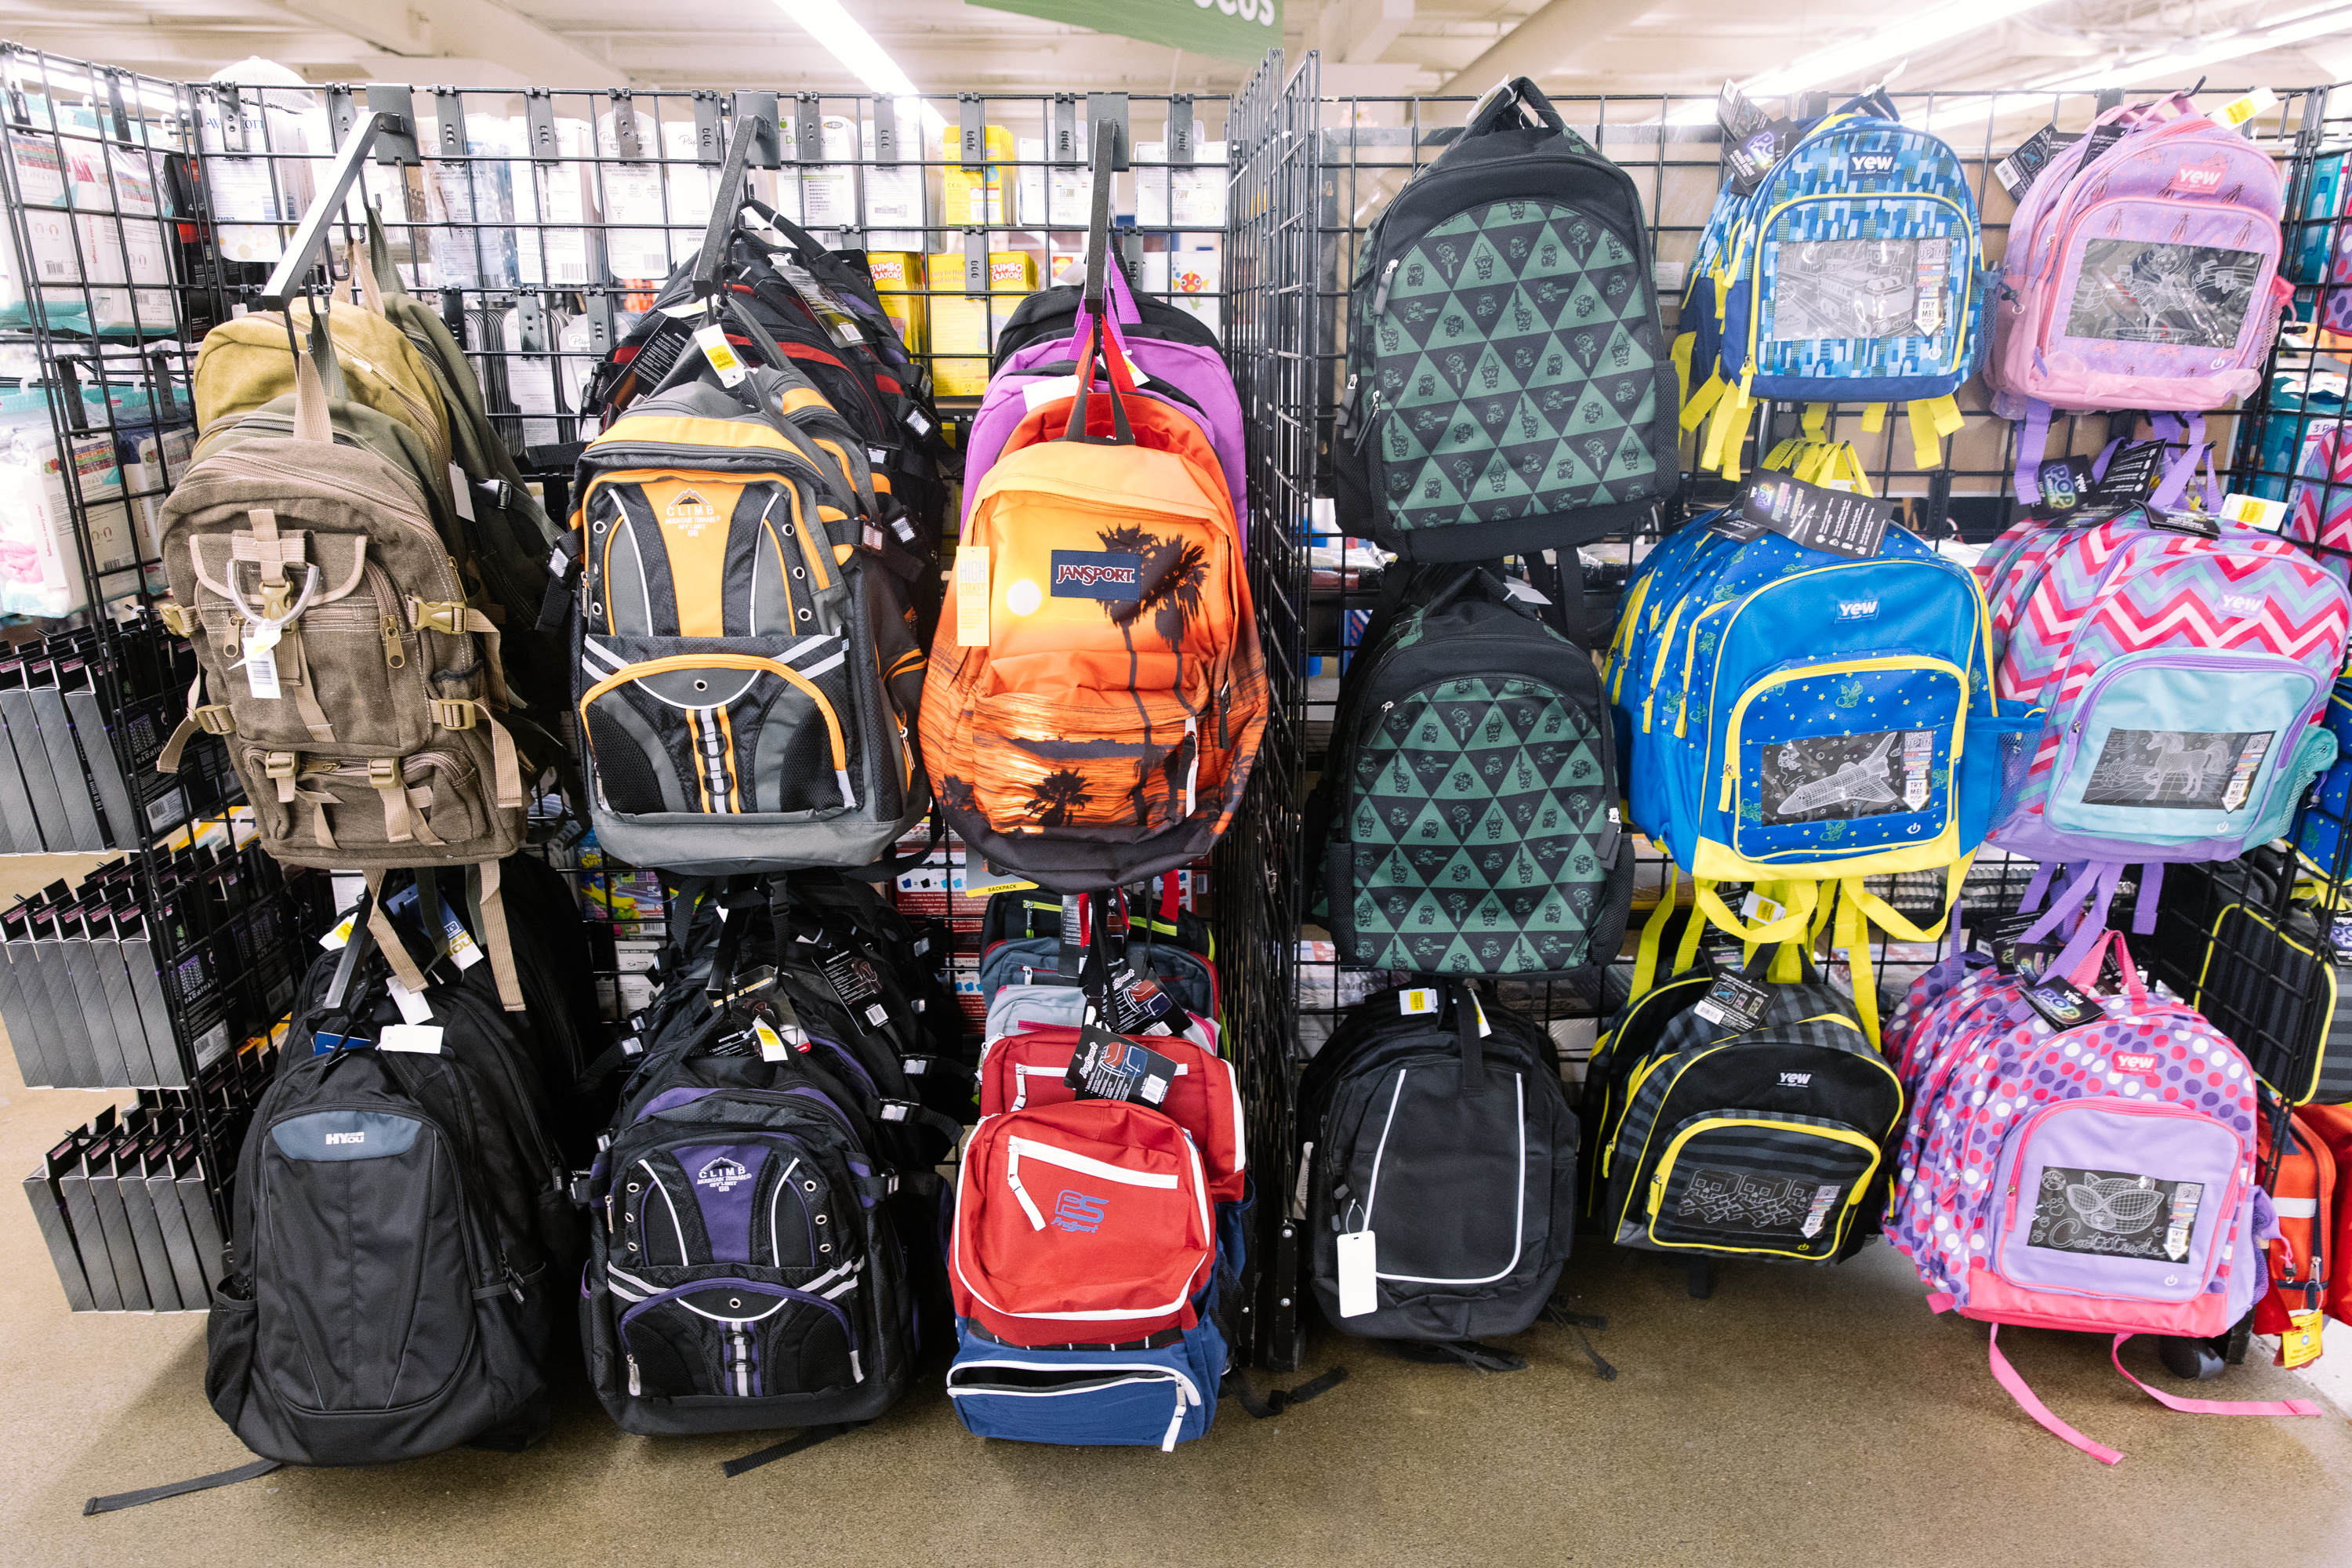 Seattle Goodwill is a great place for families to score the trendiest looks for back to school. That includes retro modern, flannel and{&nbsp;} comfy cool! Plus Goodwill has new items for sale too, including backpacks and lunch boxes. (Photo: Seattle Goodwill){&nbsp;}<p></p>